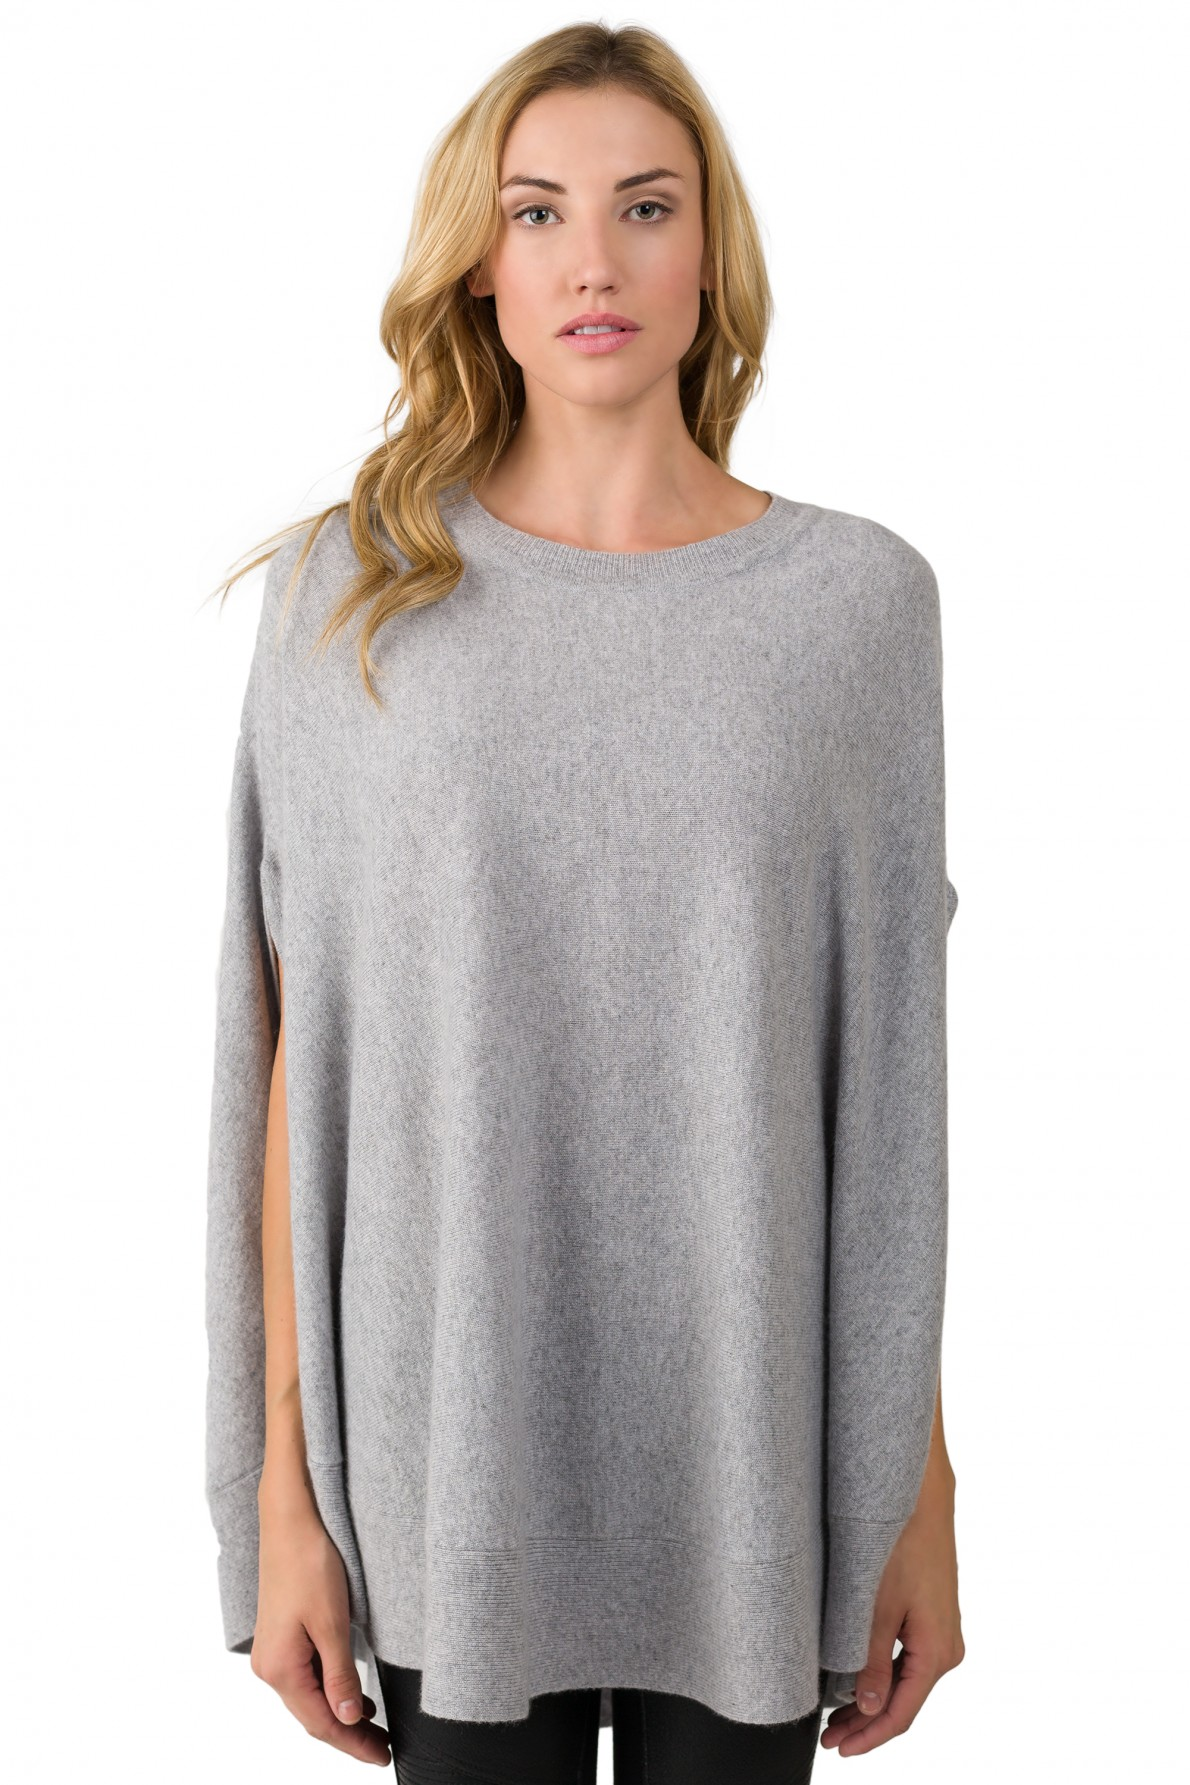 gray cashmere oversized laid-back poncho sweater front view AVZOJWM